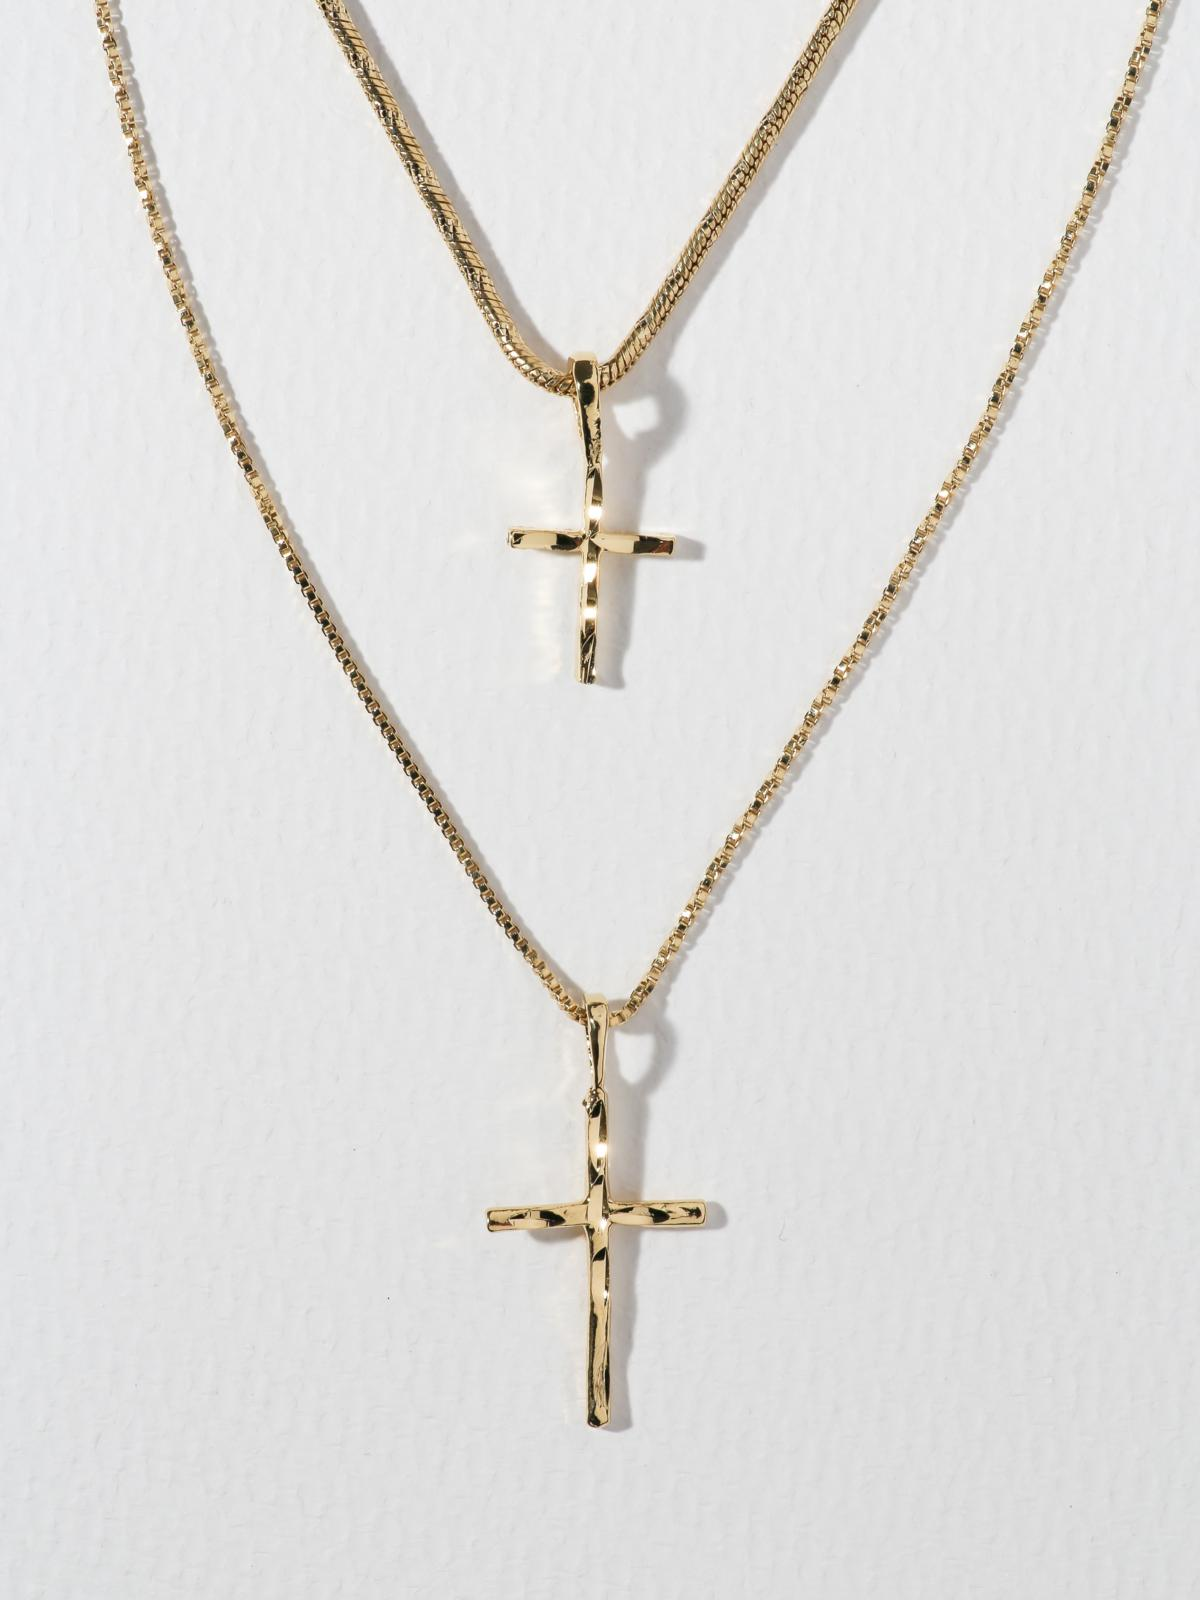 The Sadie Necklace